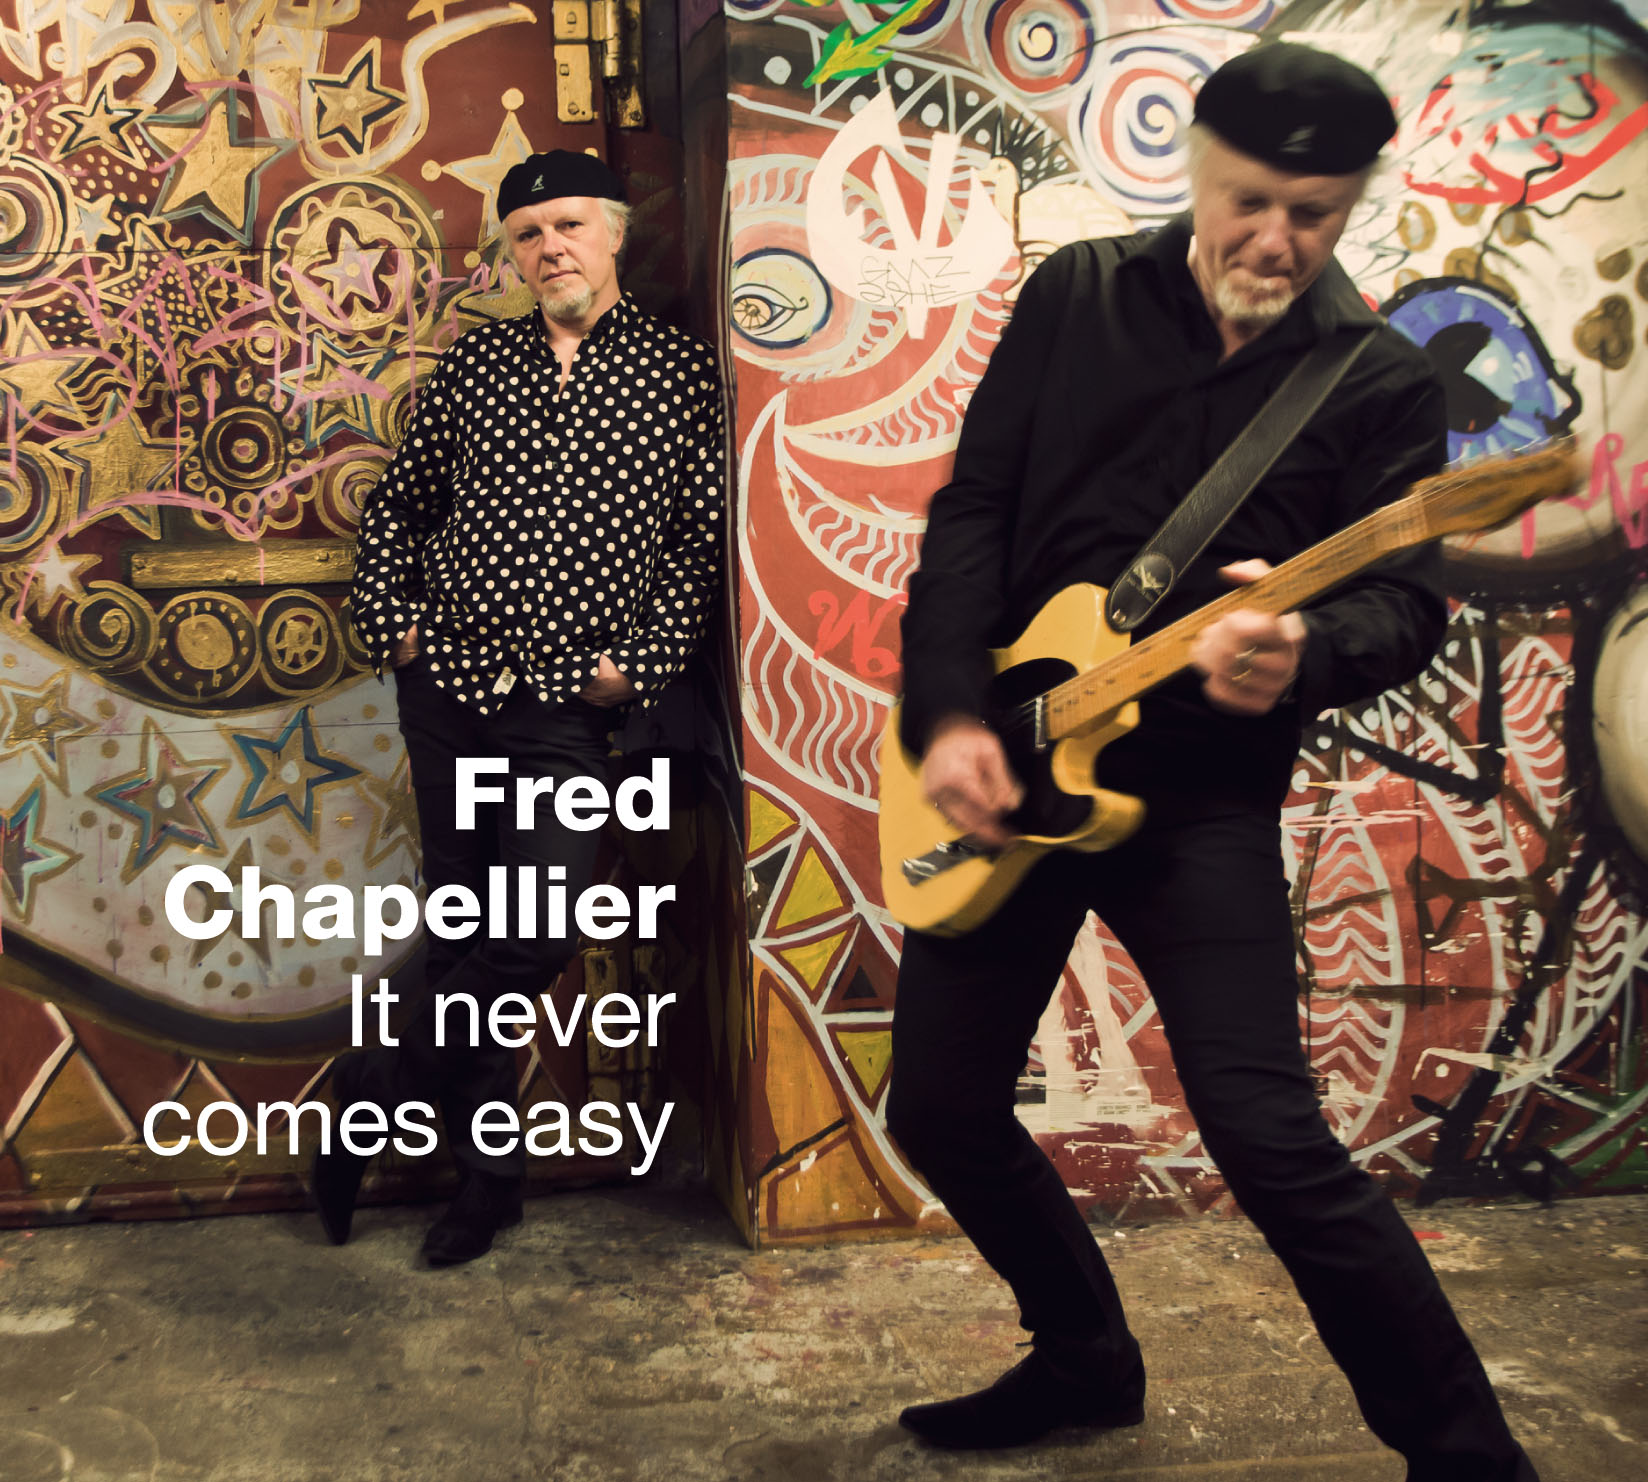 CHAPELLIER FRED-It never comes easy